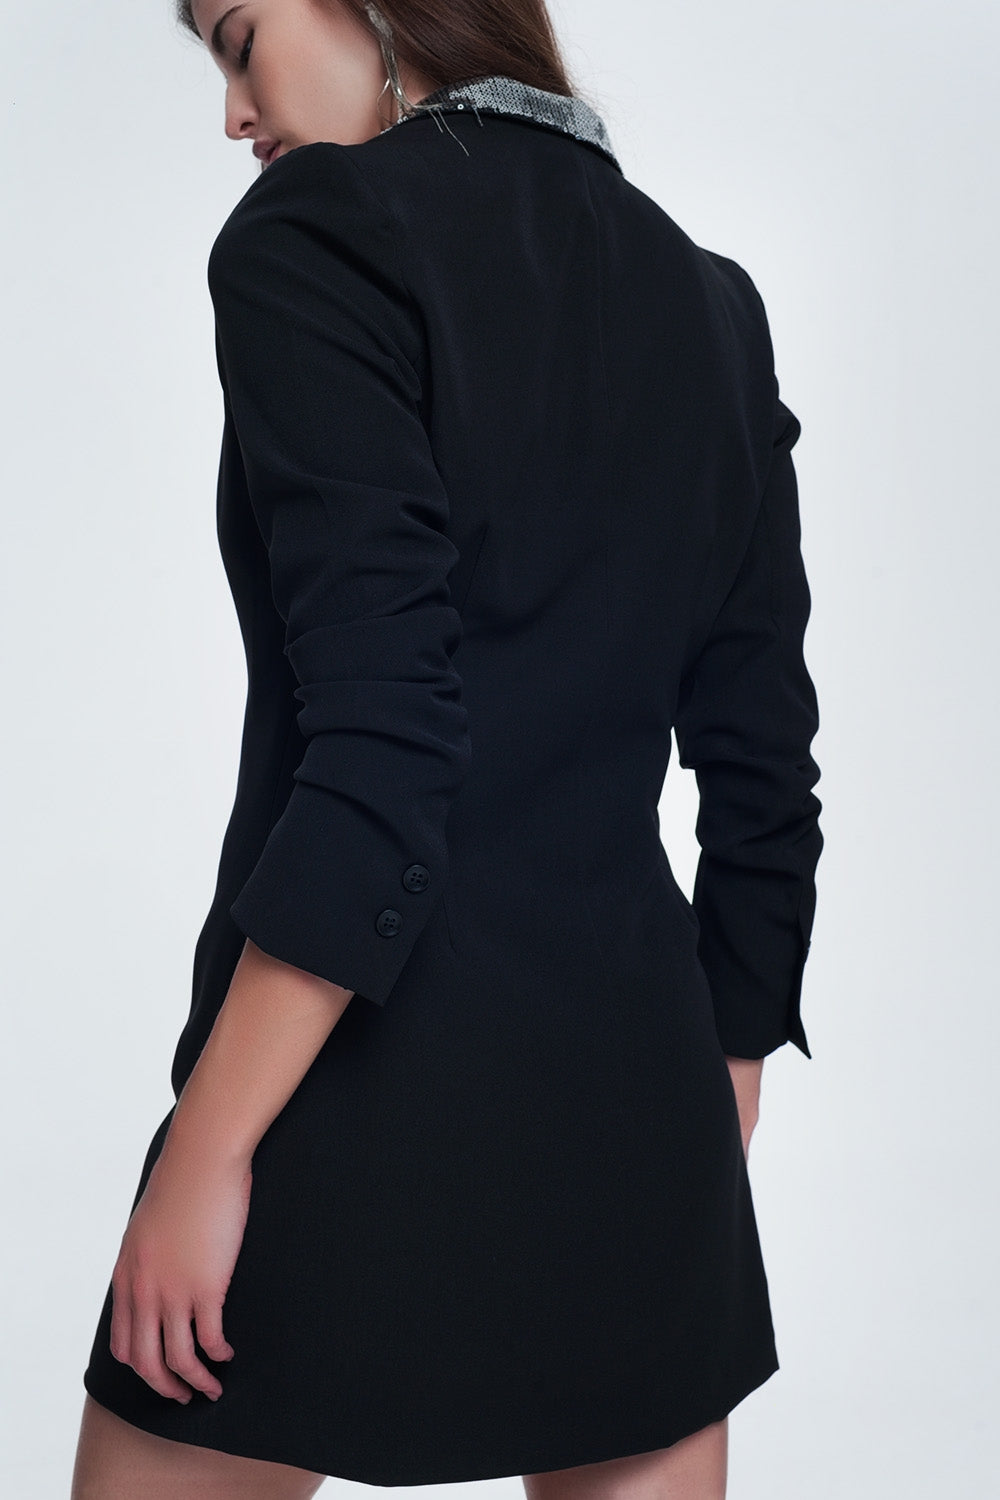 Black Mini Dress With Shiny Detail By The Collar-Women - Apparel - Dresses - Day to Night-L-Keyomi-Sook